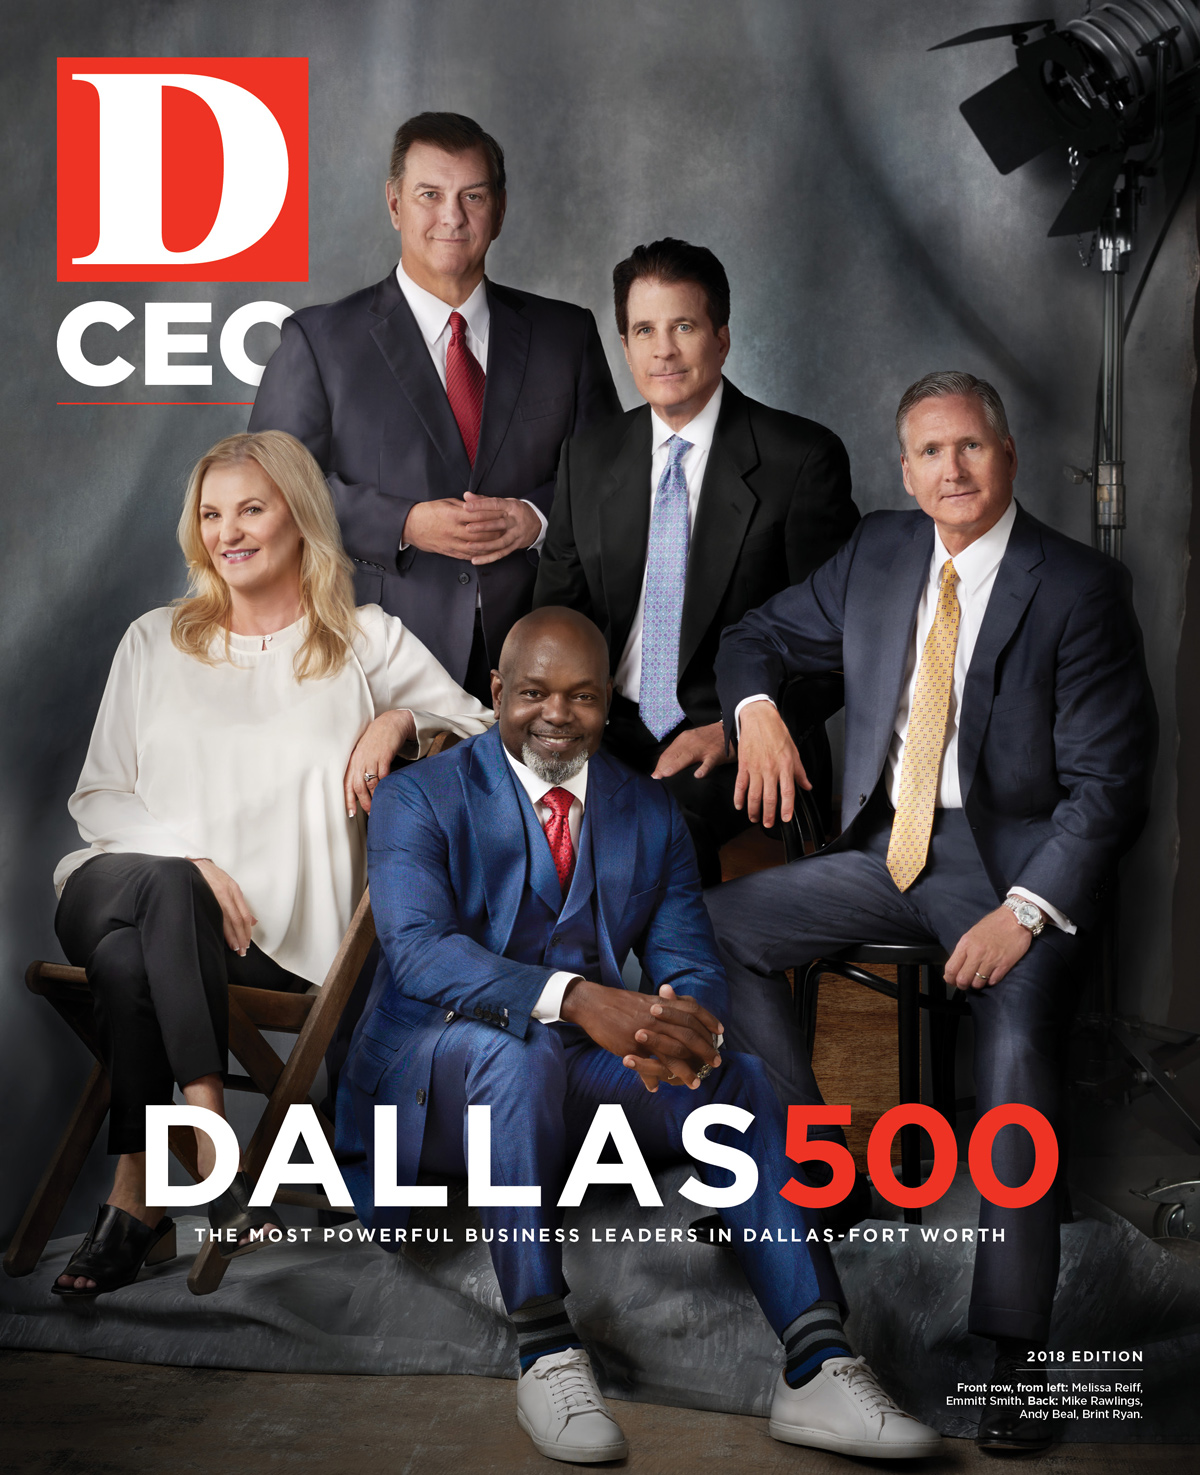 Dallas 500 2018 cover